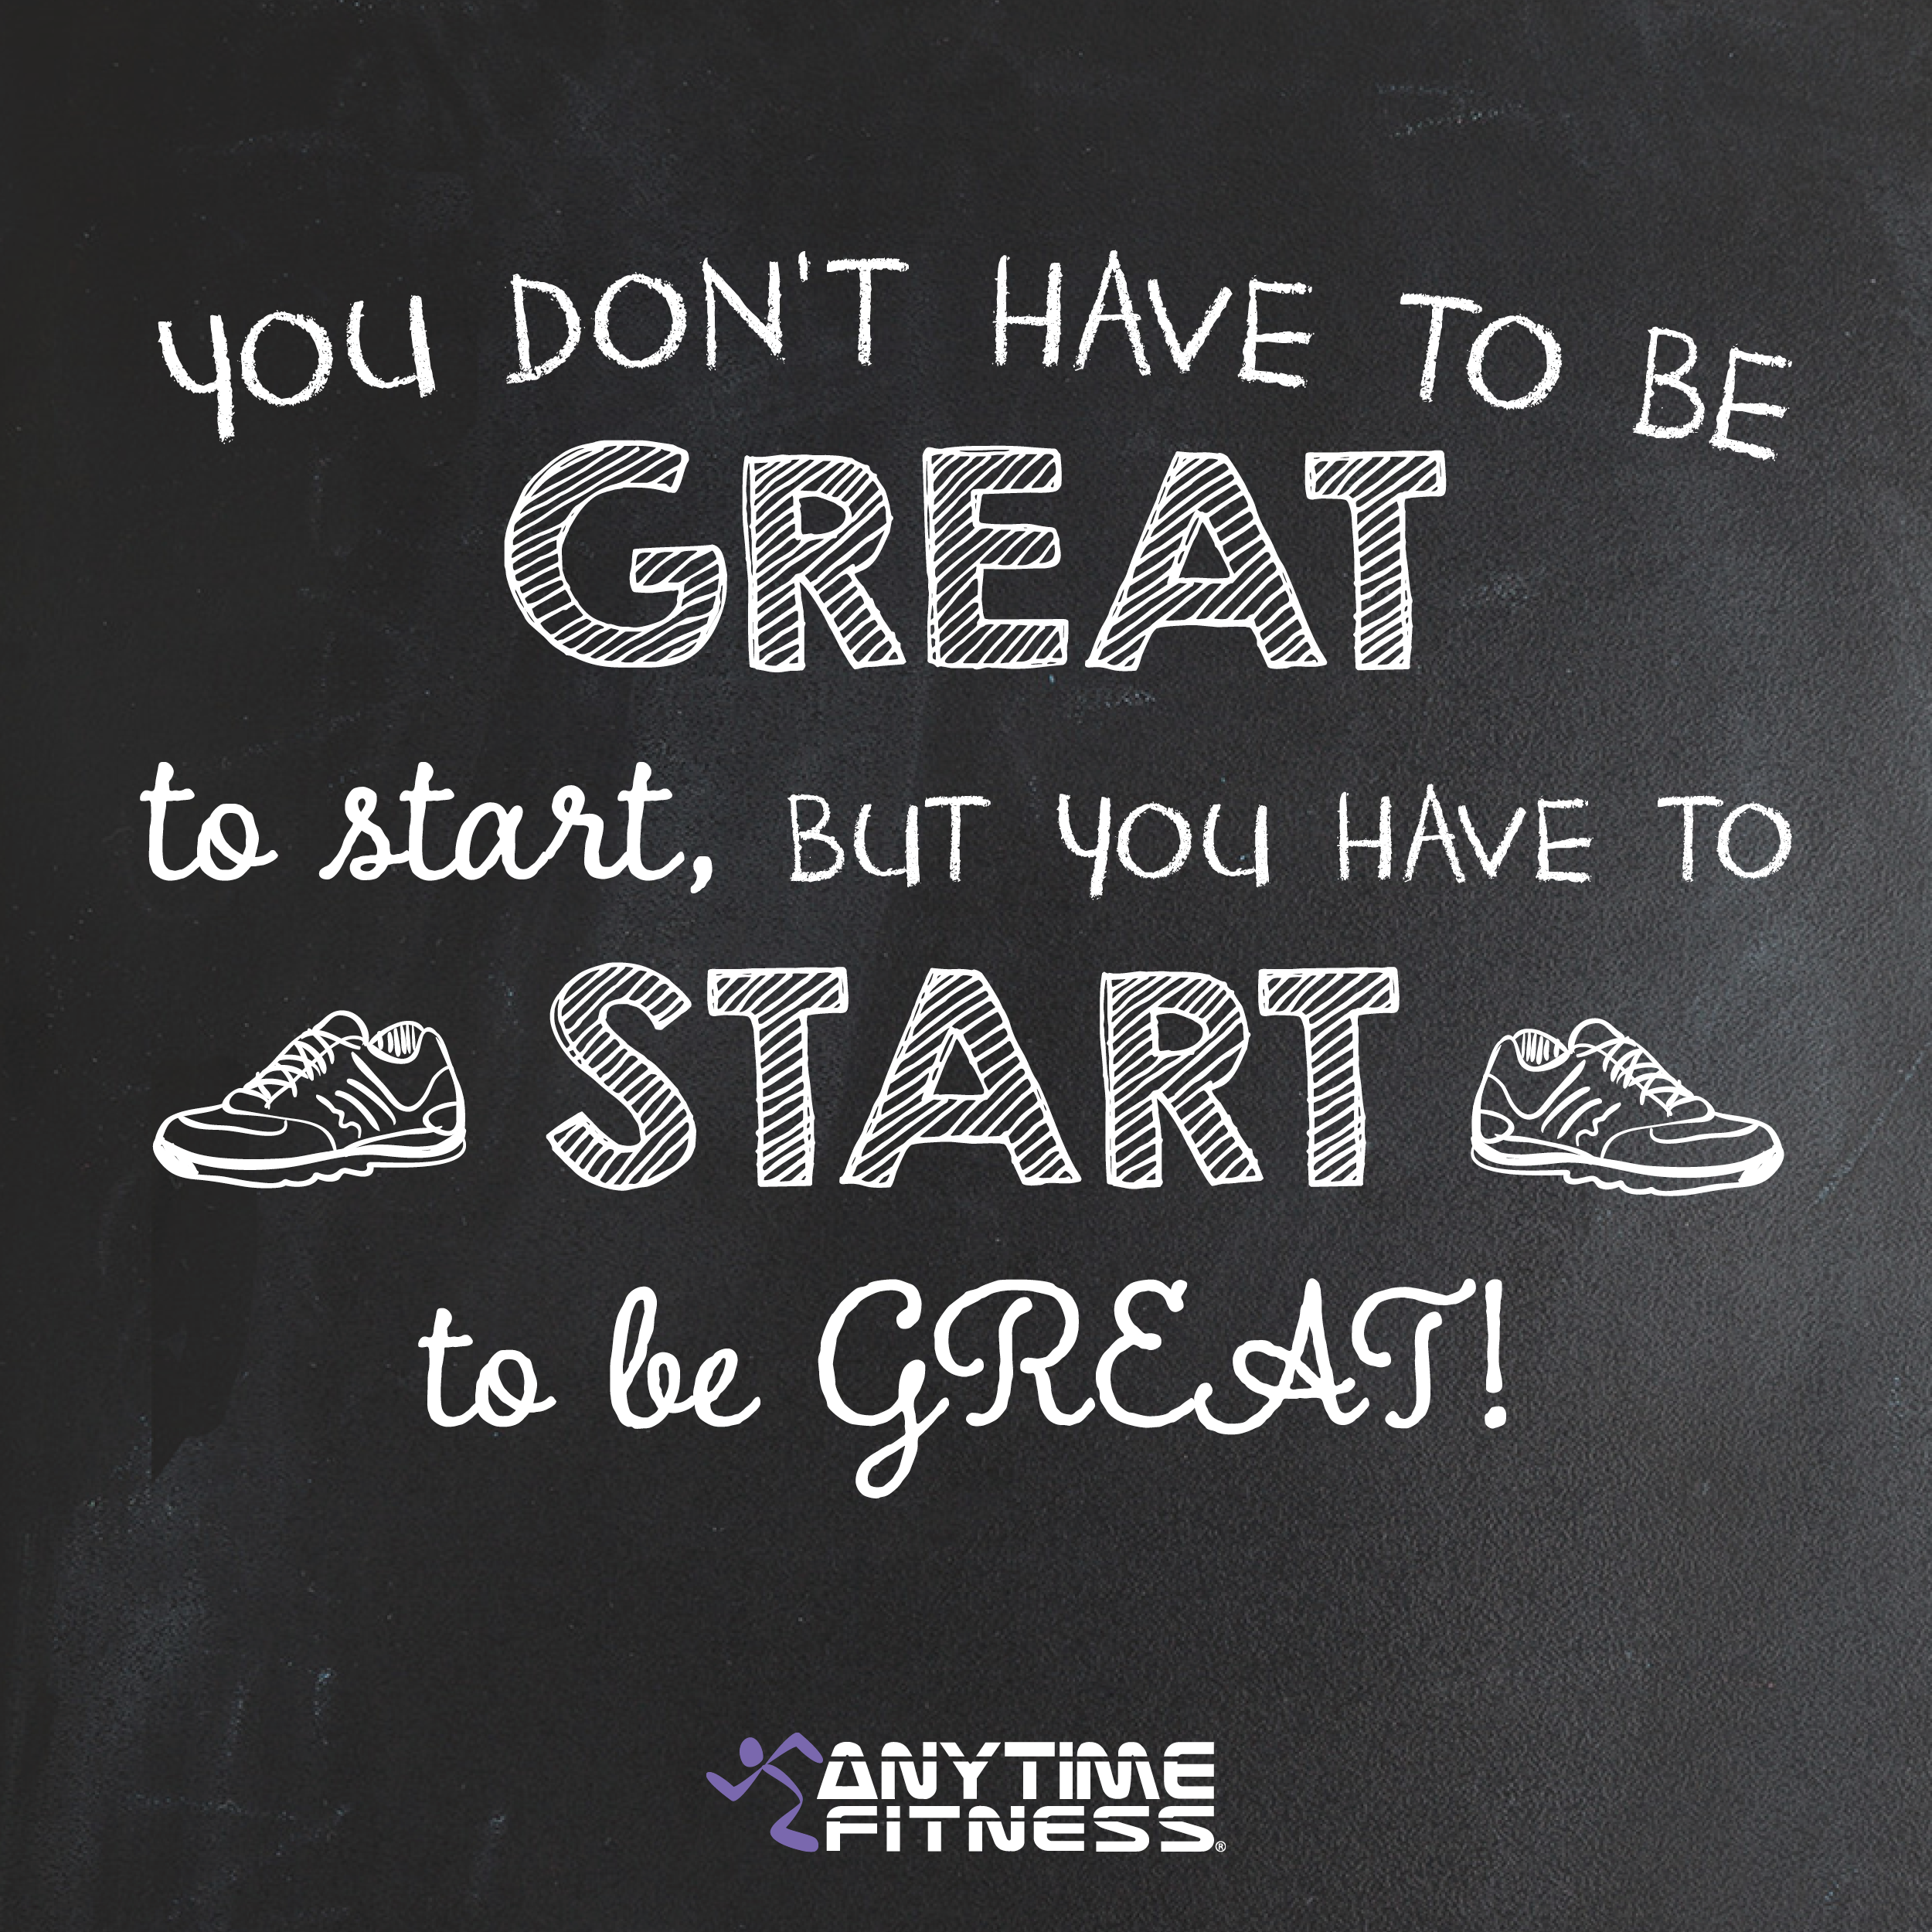 You don t have to be great to start but you have to start to be